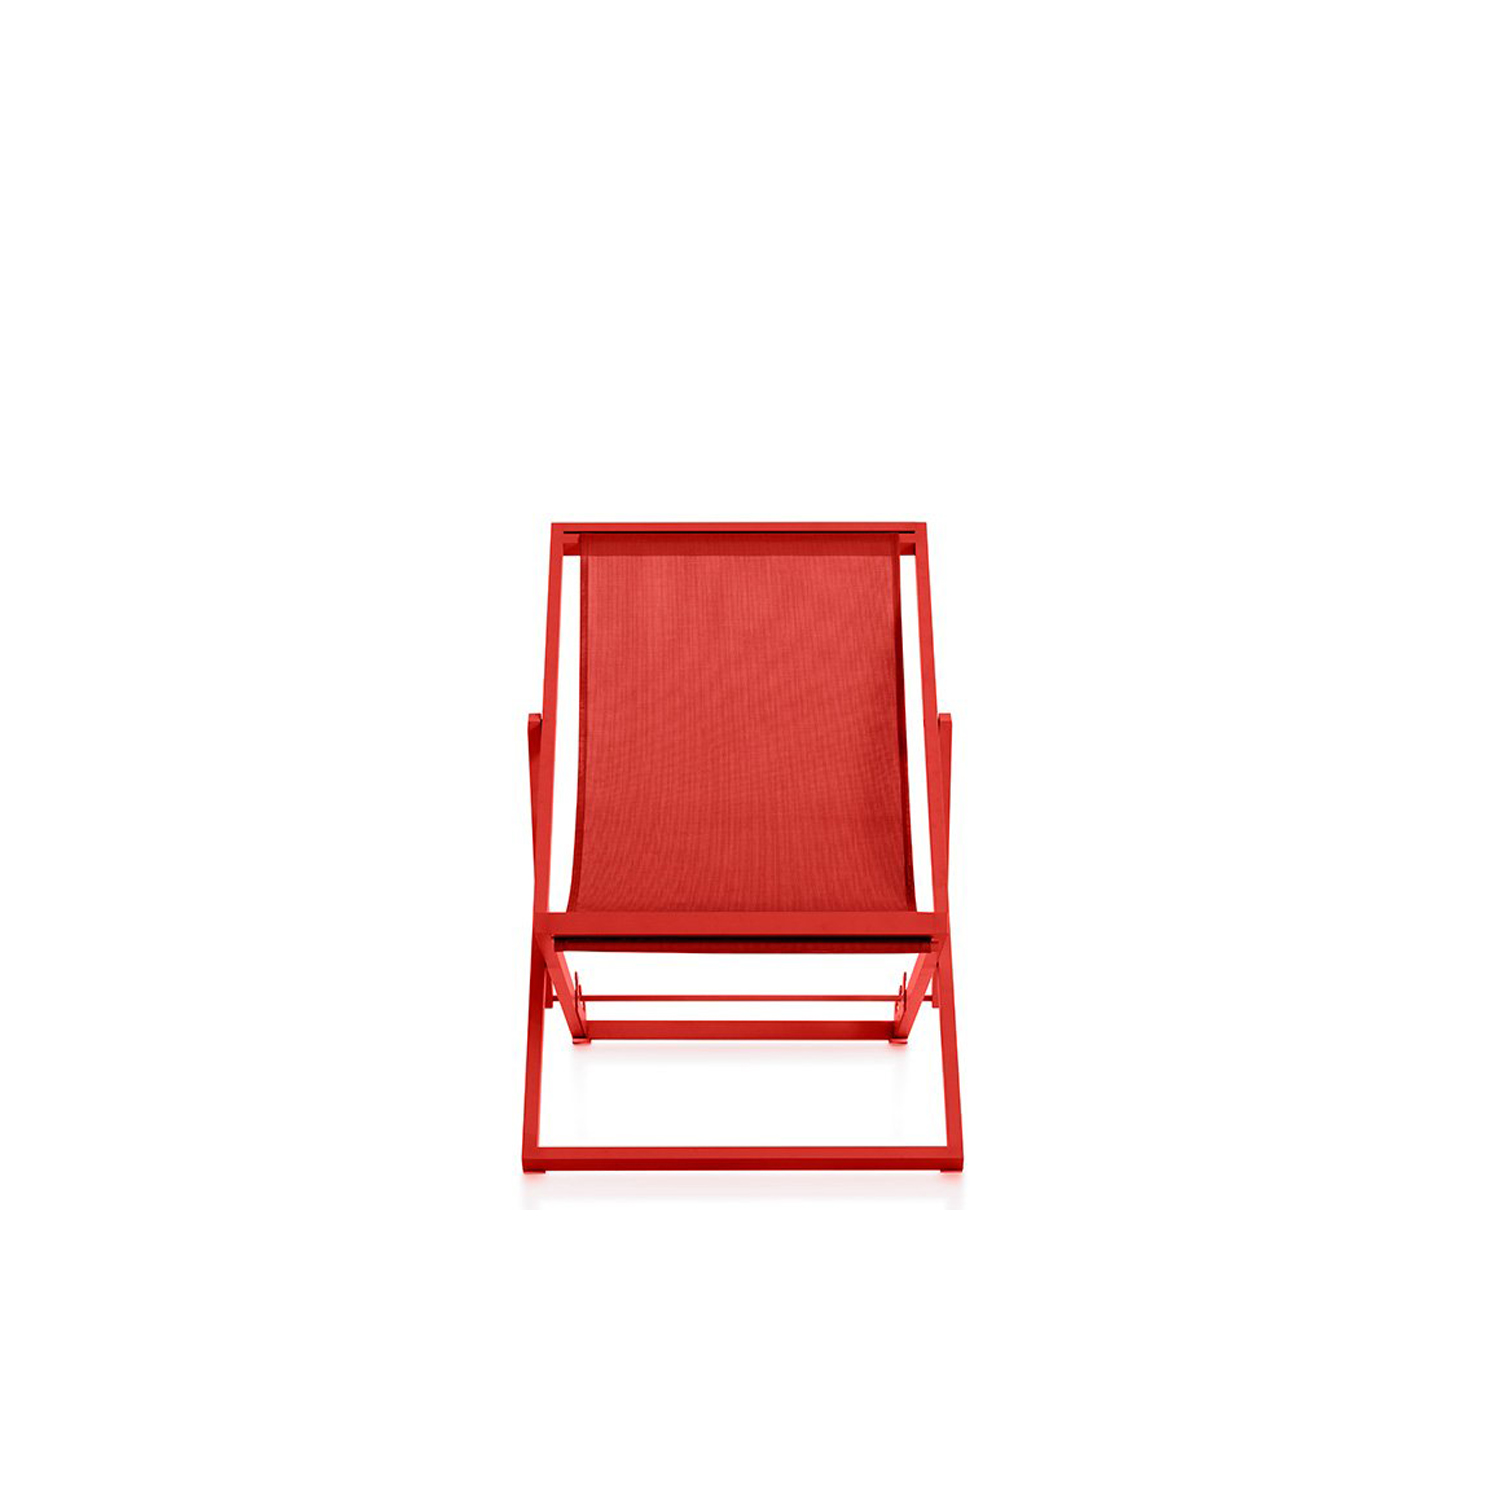 Picnic Deckchair - <p>Picnic is an improved version of the traditional folding garden deckchair. With a lighter and more hard-wearing design making it easier to carry to the beach or the park, Picnic can also be left outside permanently in all weather conditions. It's the ideal companion for enjoying a day out in the open air, plus it can be used at home both indoors and outdoors as it's foldable and very easy to carry around.</p> <p>Read, rest and relax, sunbathe… the back has three positions, at 105°, 120° and 130° so you can use it for all kinds of occasions. It's made from an ergonomic plastic fabric and has an aluminium structure, making it much more resistant to sun, water and salt than the traditional wood and canvas versions. Plus, both these materials need less maintenance.</p>    Matter of Stuff